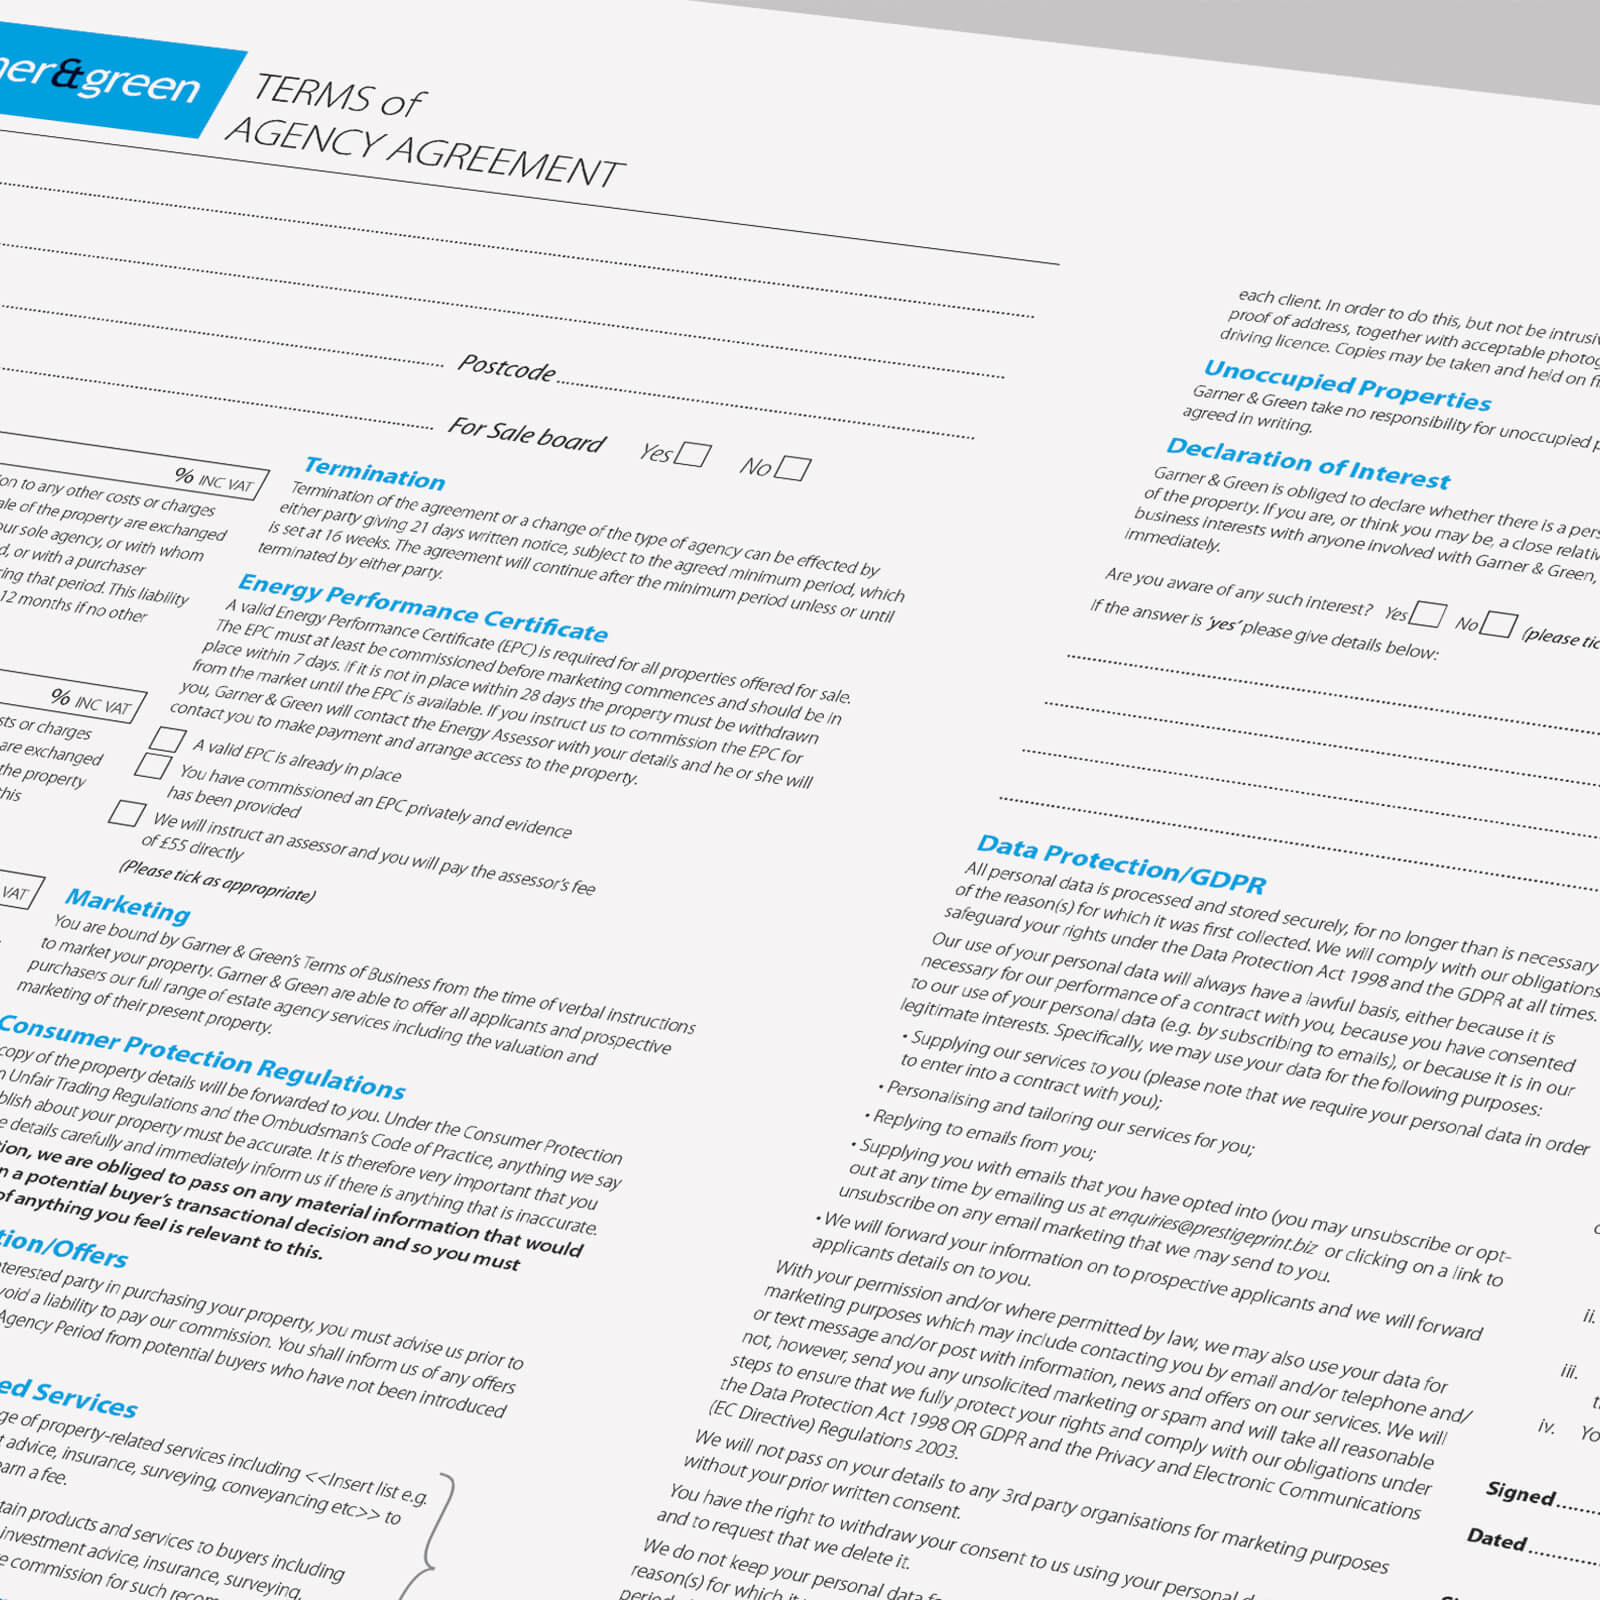 Estate agent agreement template ncr estate agents agreement template featurehead ncr sales 02 platinumwayz